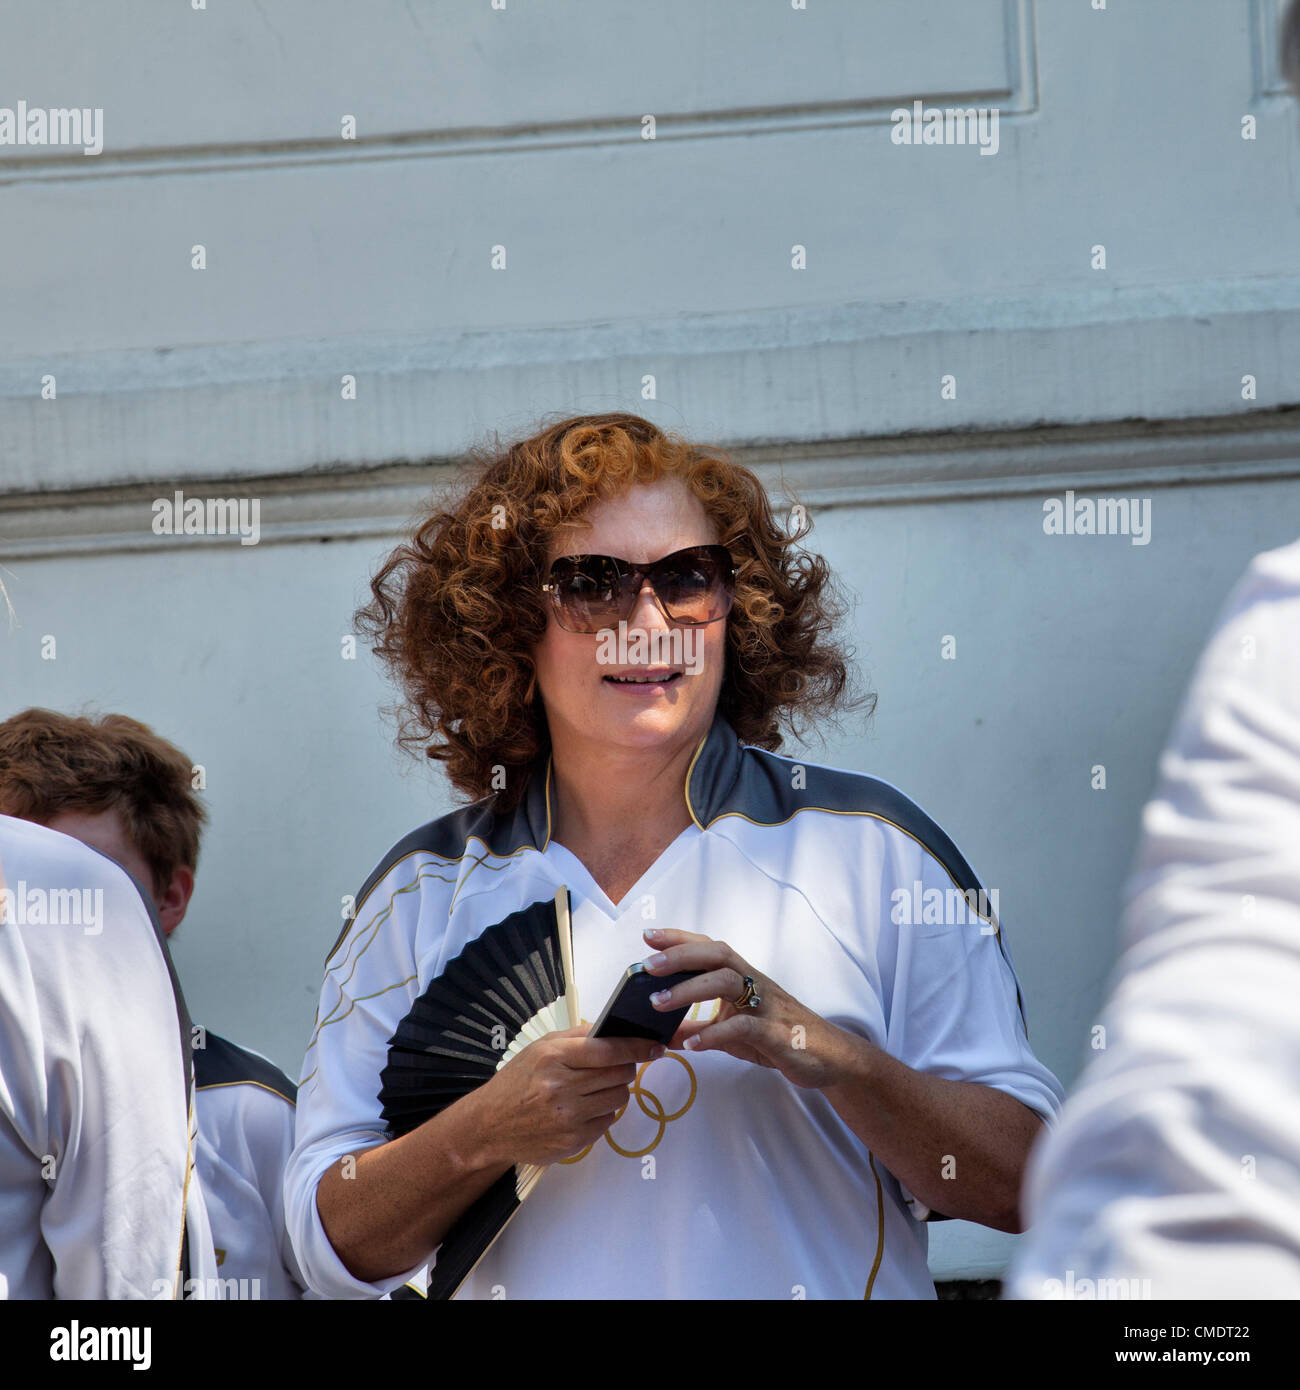 26 July 2012, Olympic Torch Relay, Clapham Common, London, UK  - 12.33 H - Jennifer ( Saunders ) Edmondson waits - Stock Image